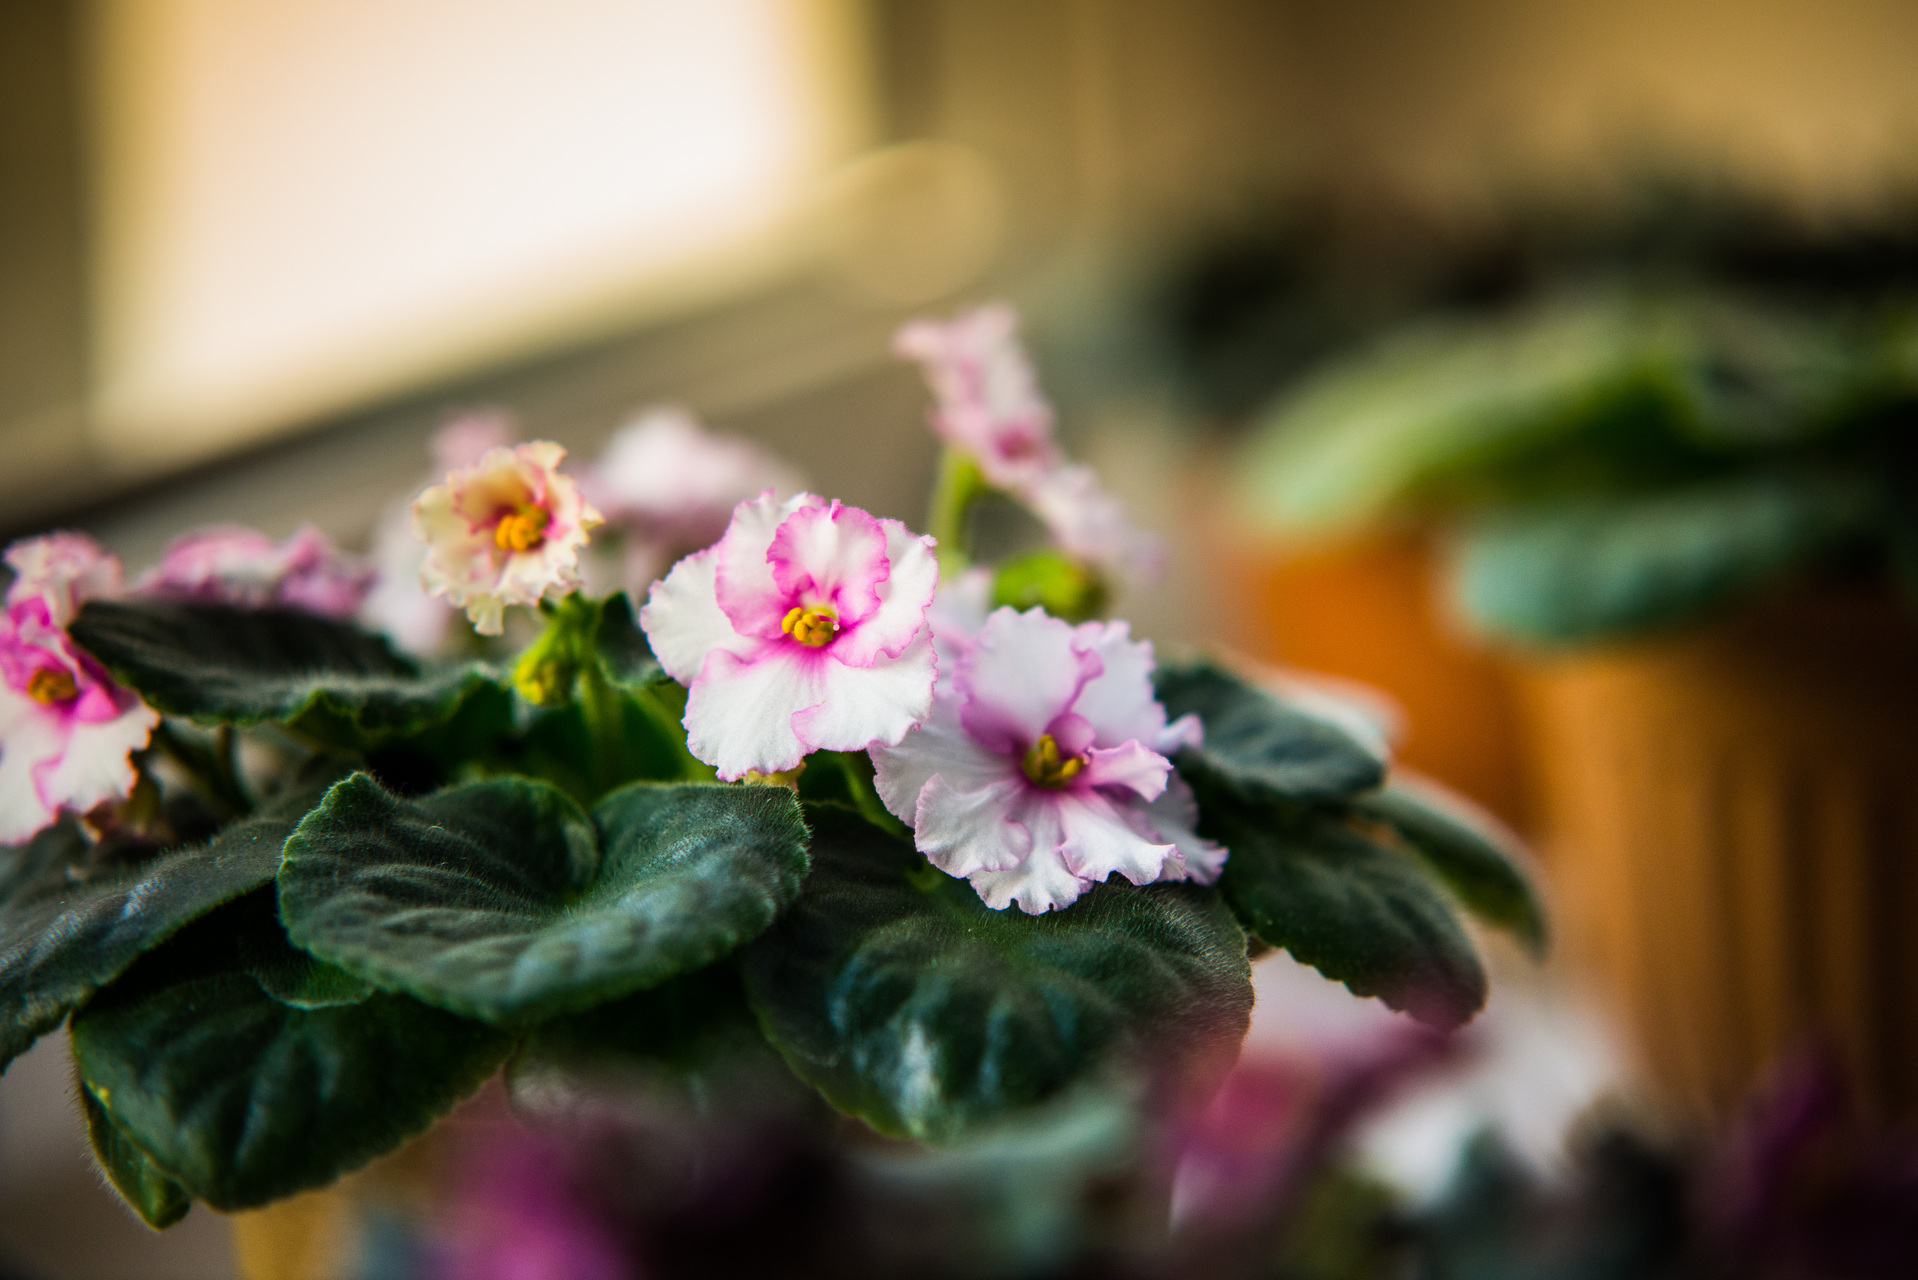 Plants to improve your apartment